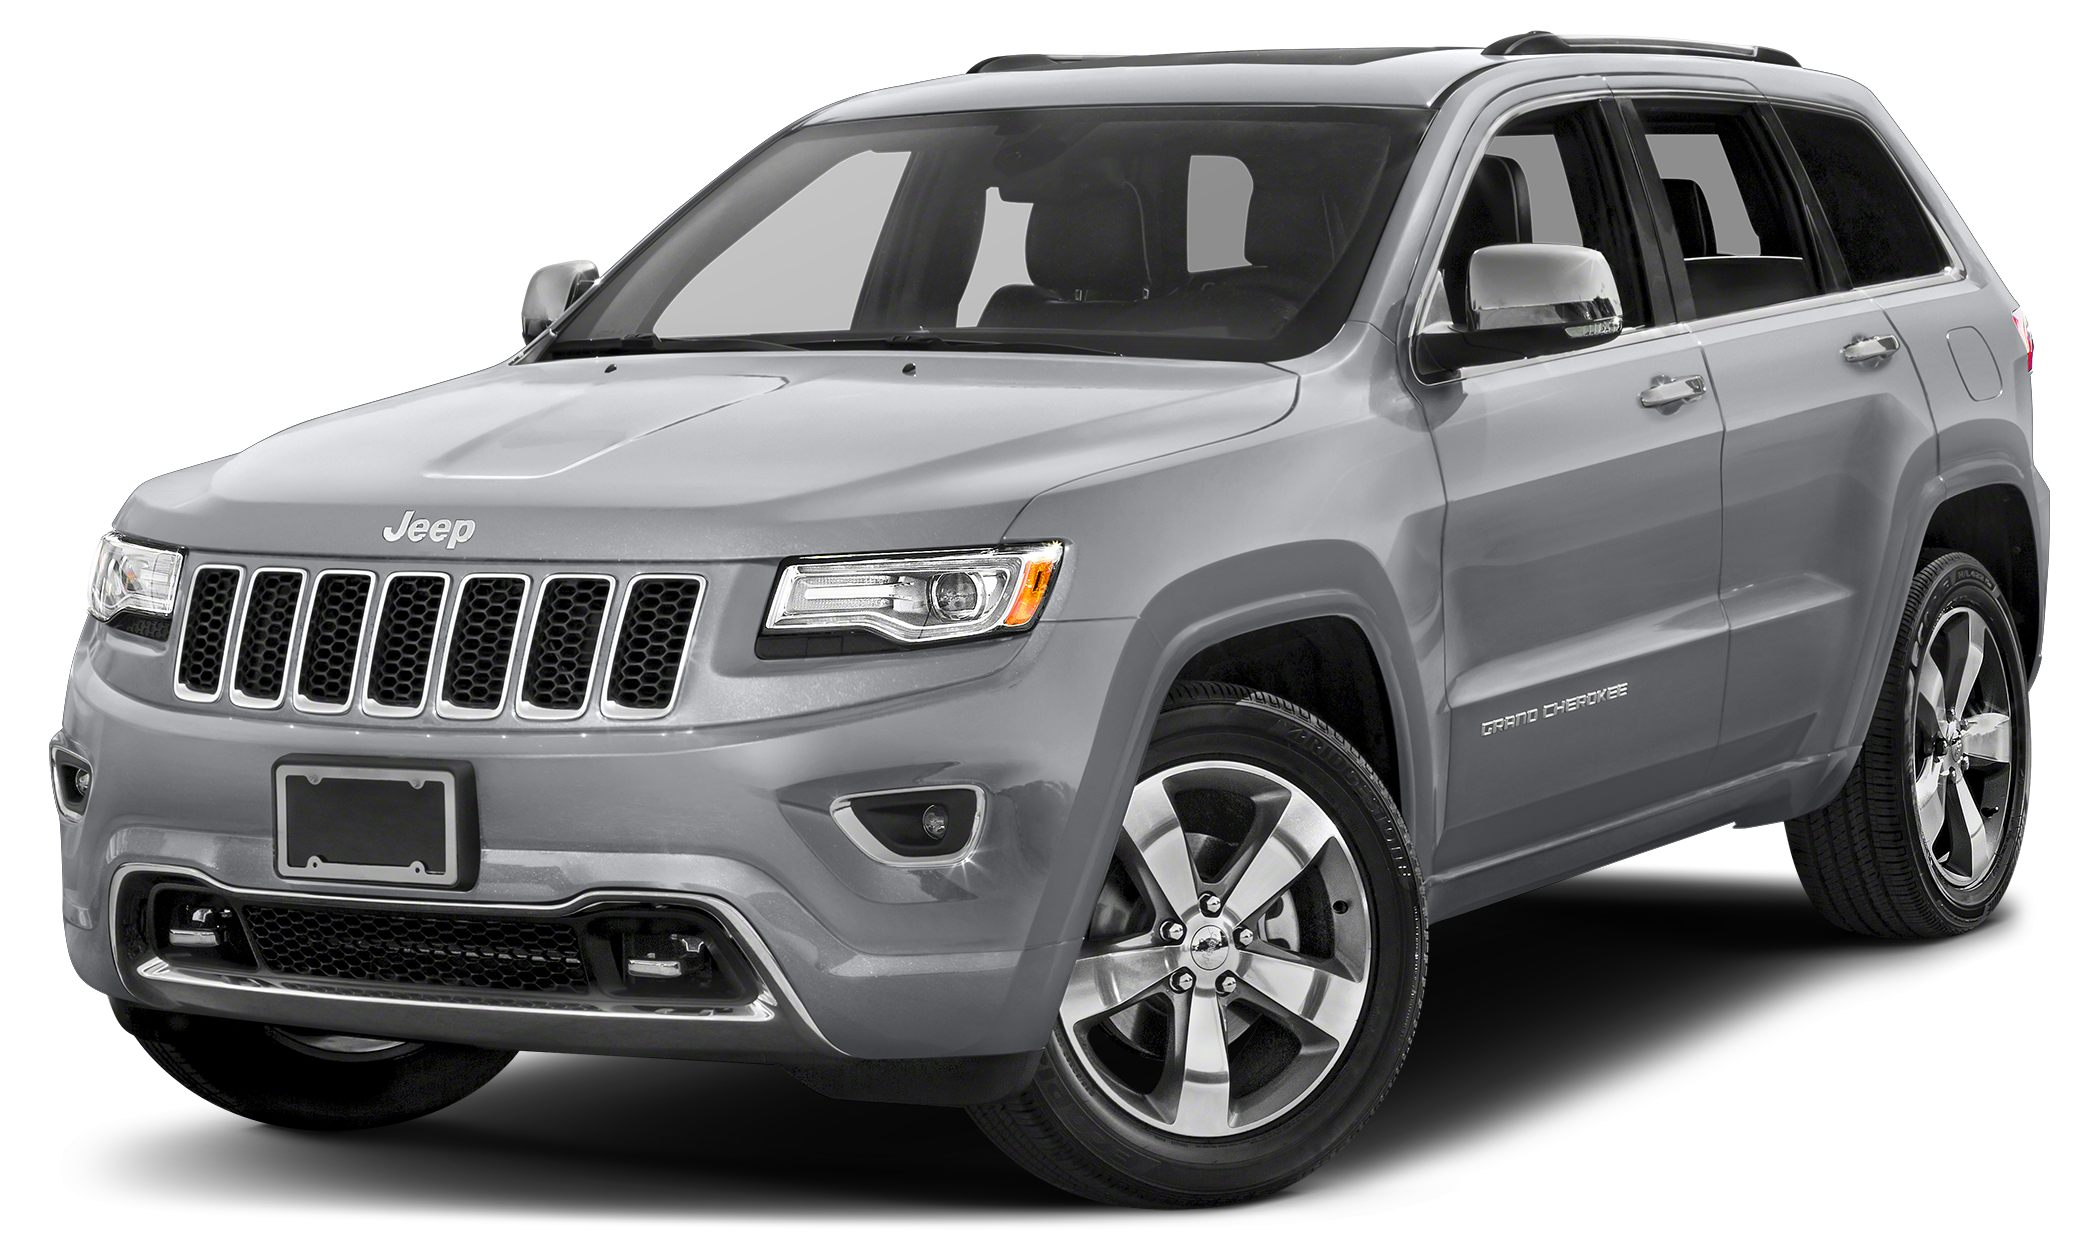 2016 Jeep Grand Cherokee Overland Want to stretch your purchasing power Well take a look at this